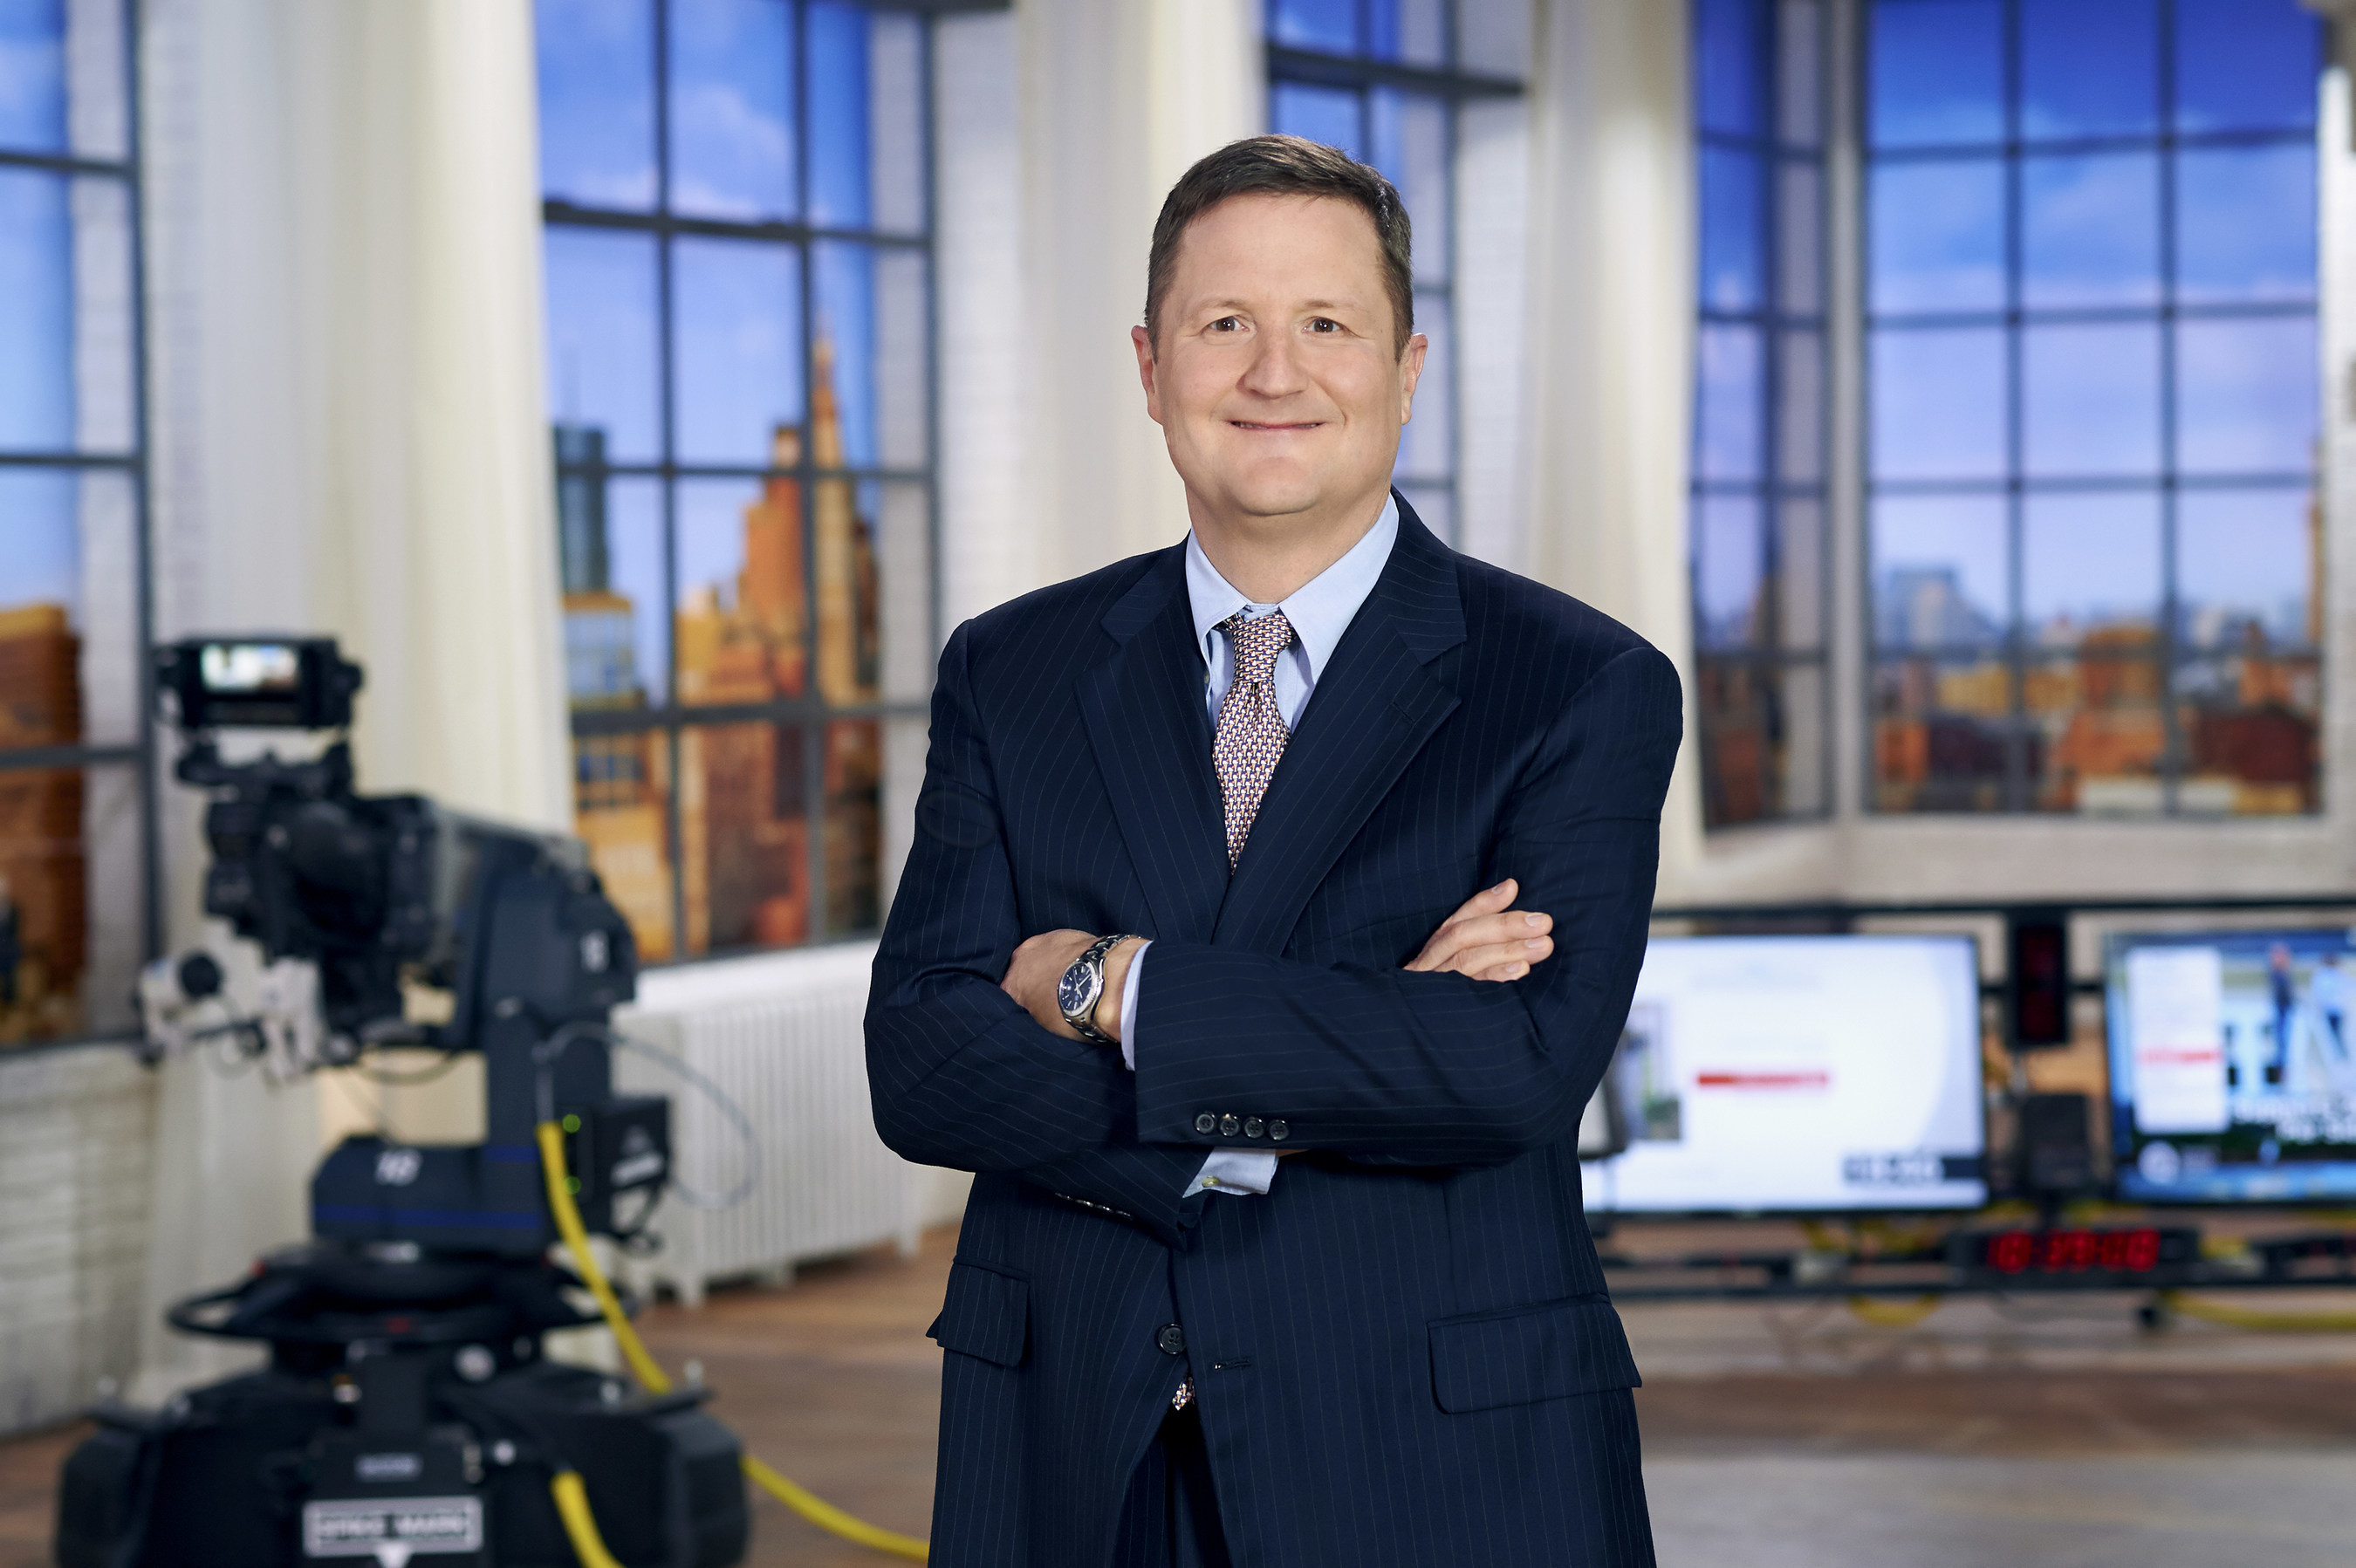 qvc appoints bob spieth to evp  customer and business services